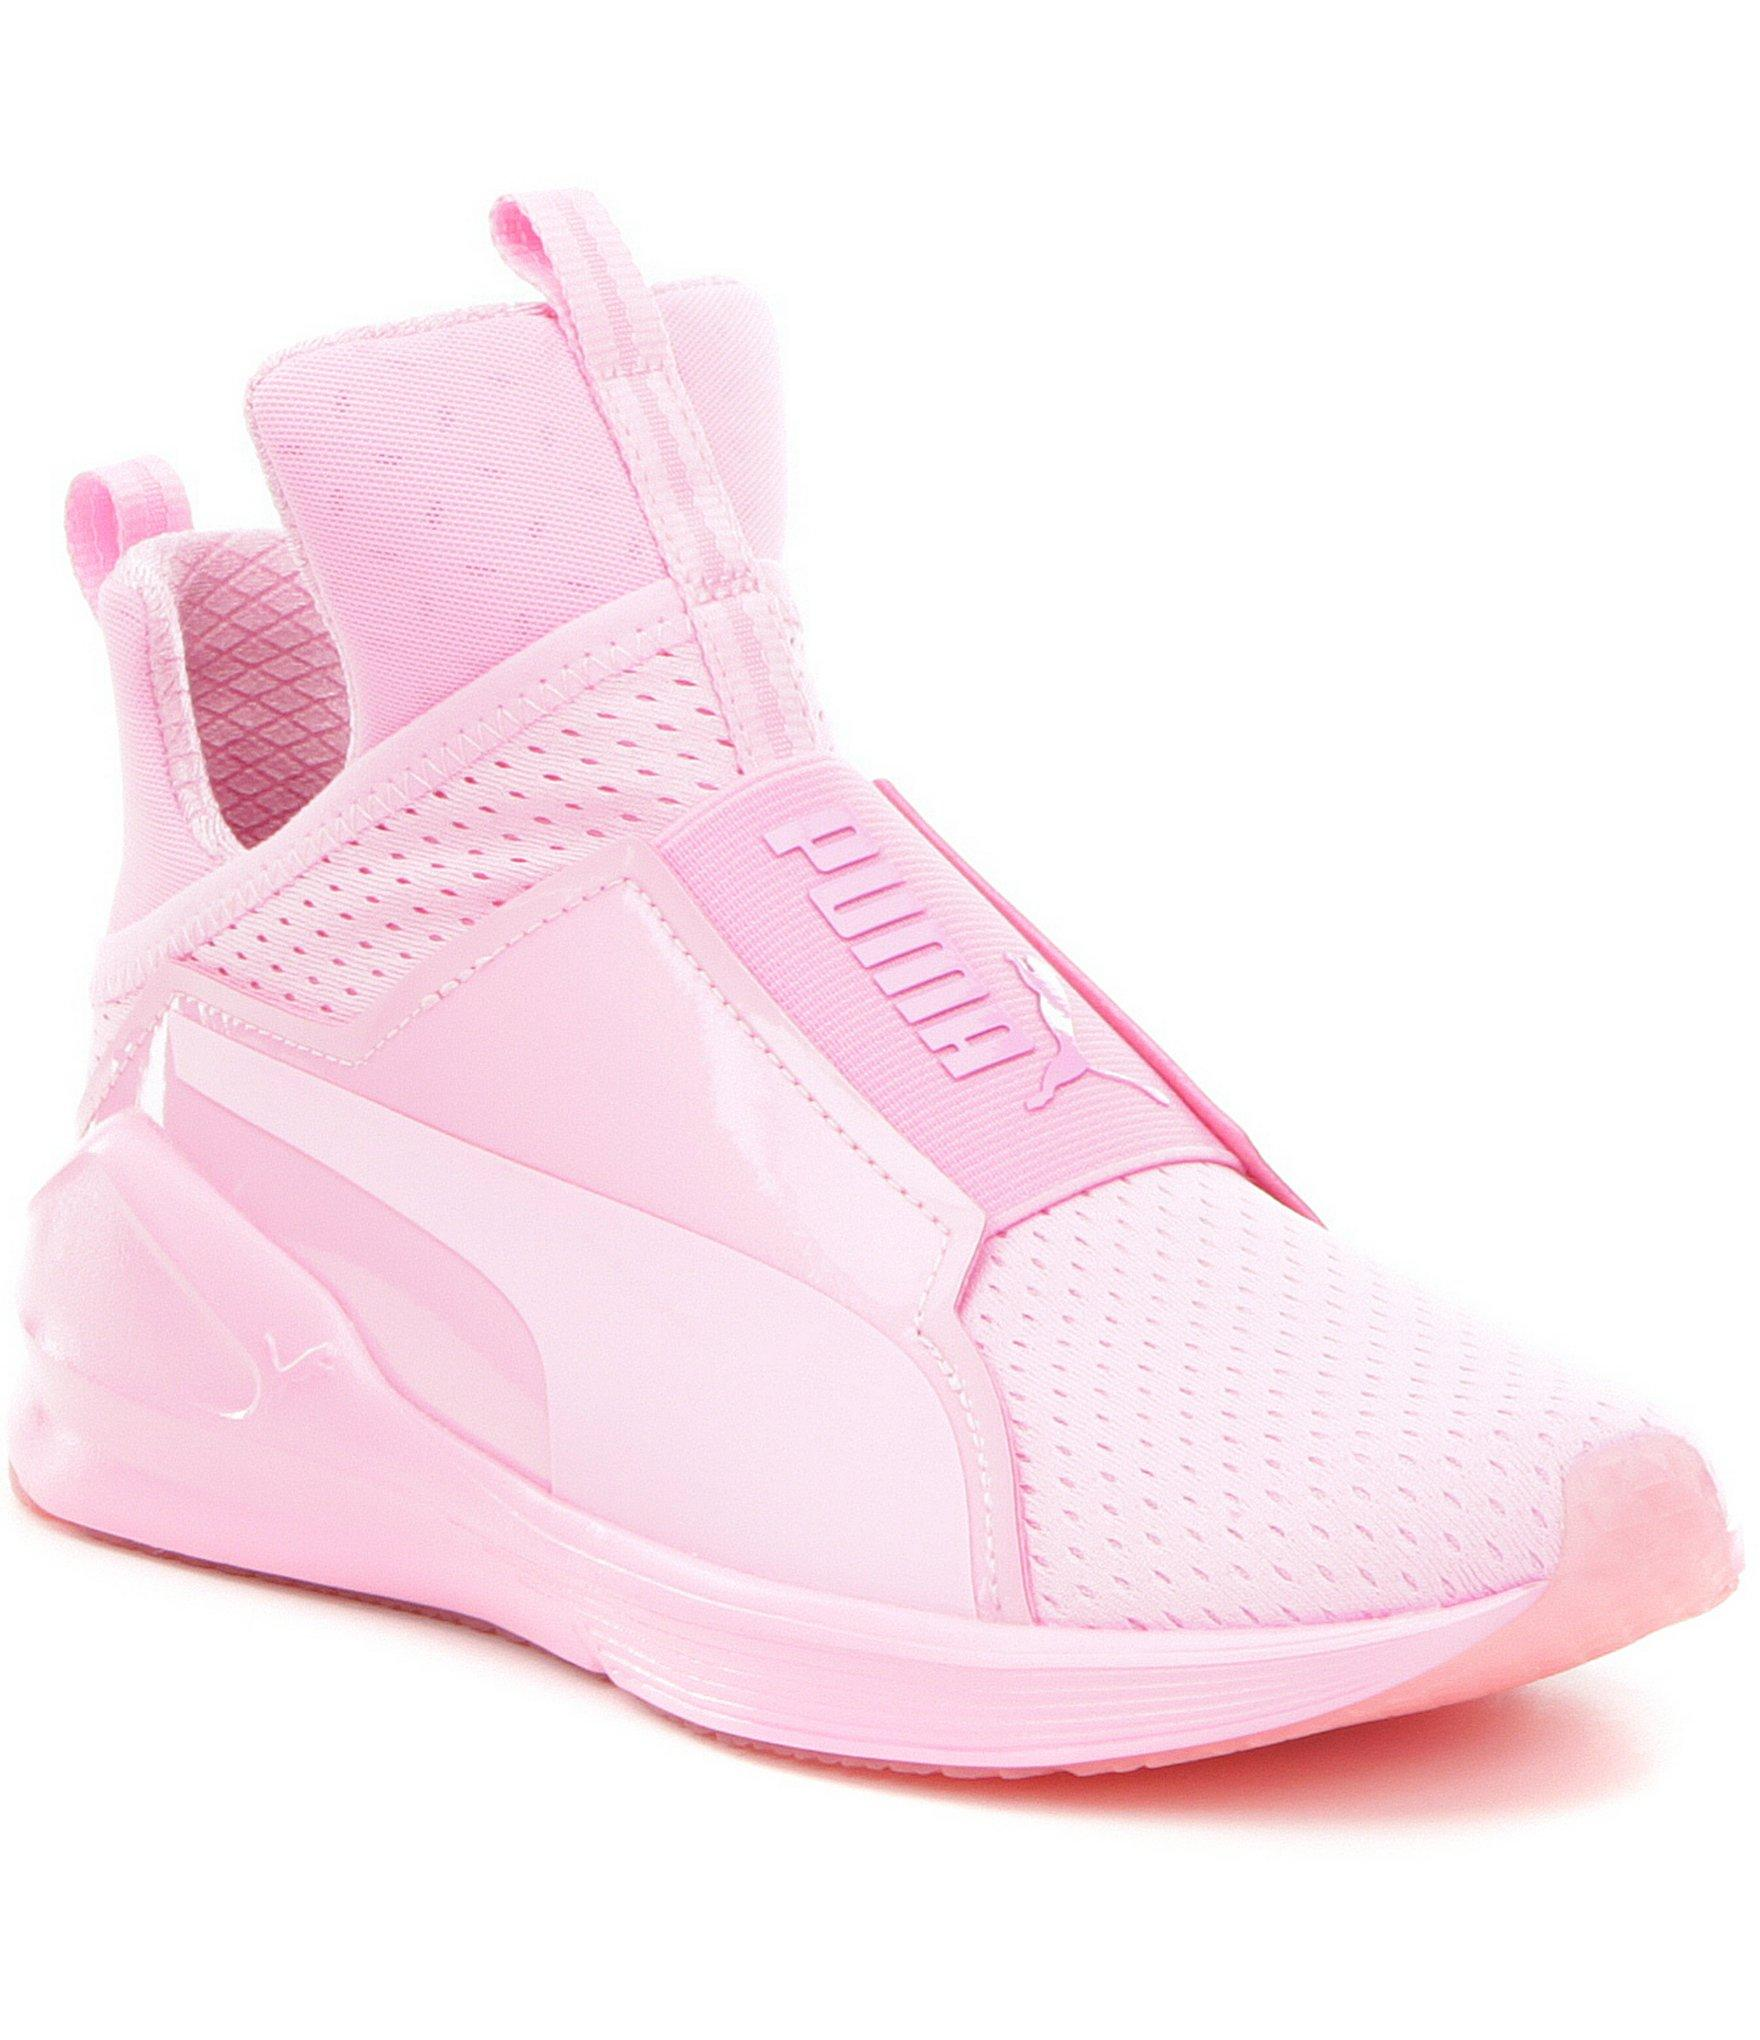 Nike Juvenate Puma Fierce Bright Mesh Sneakers In Pink - Lyst